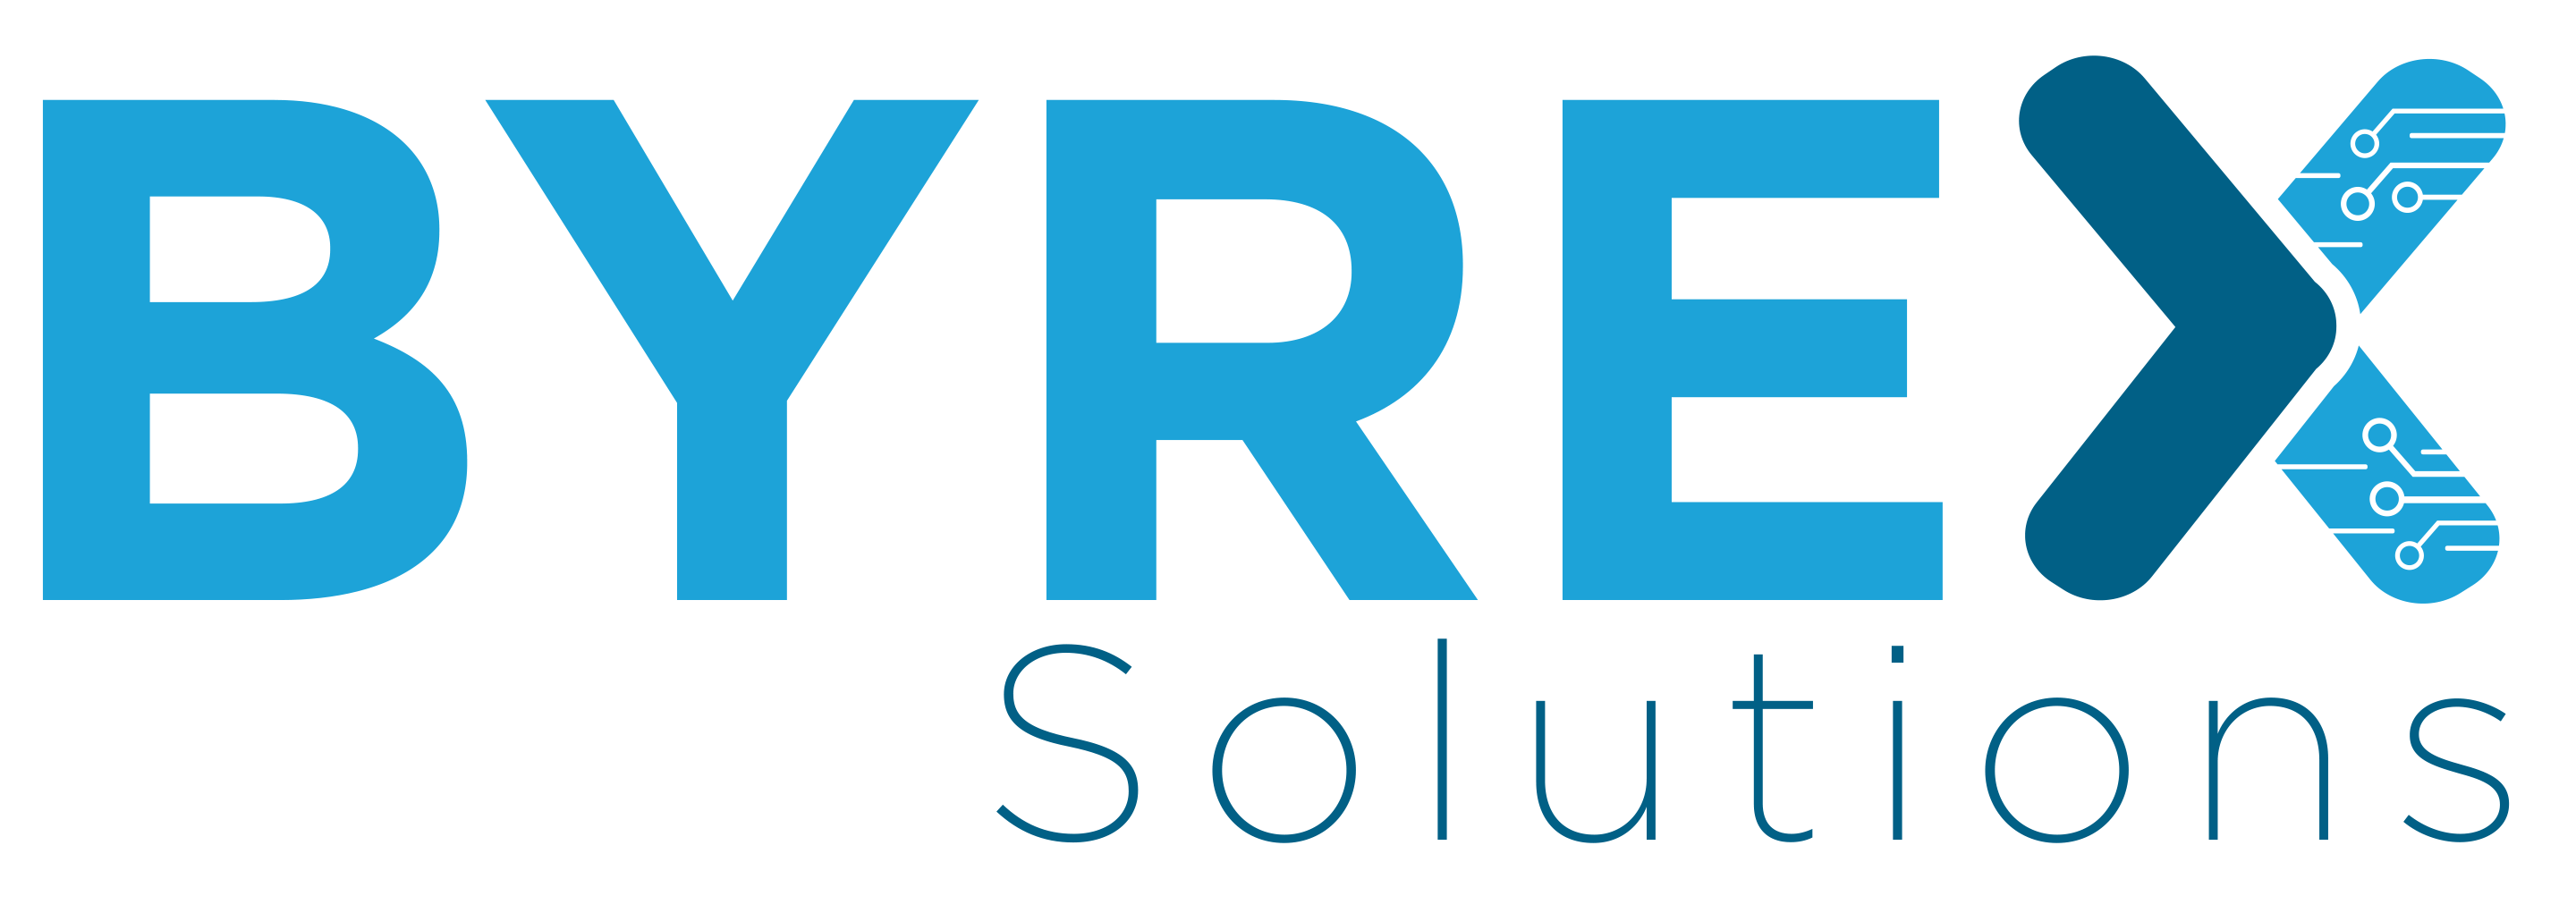 Byrex Solutions